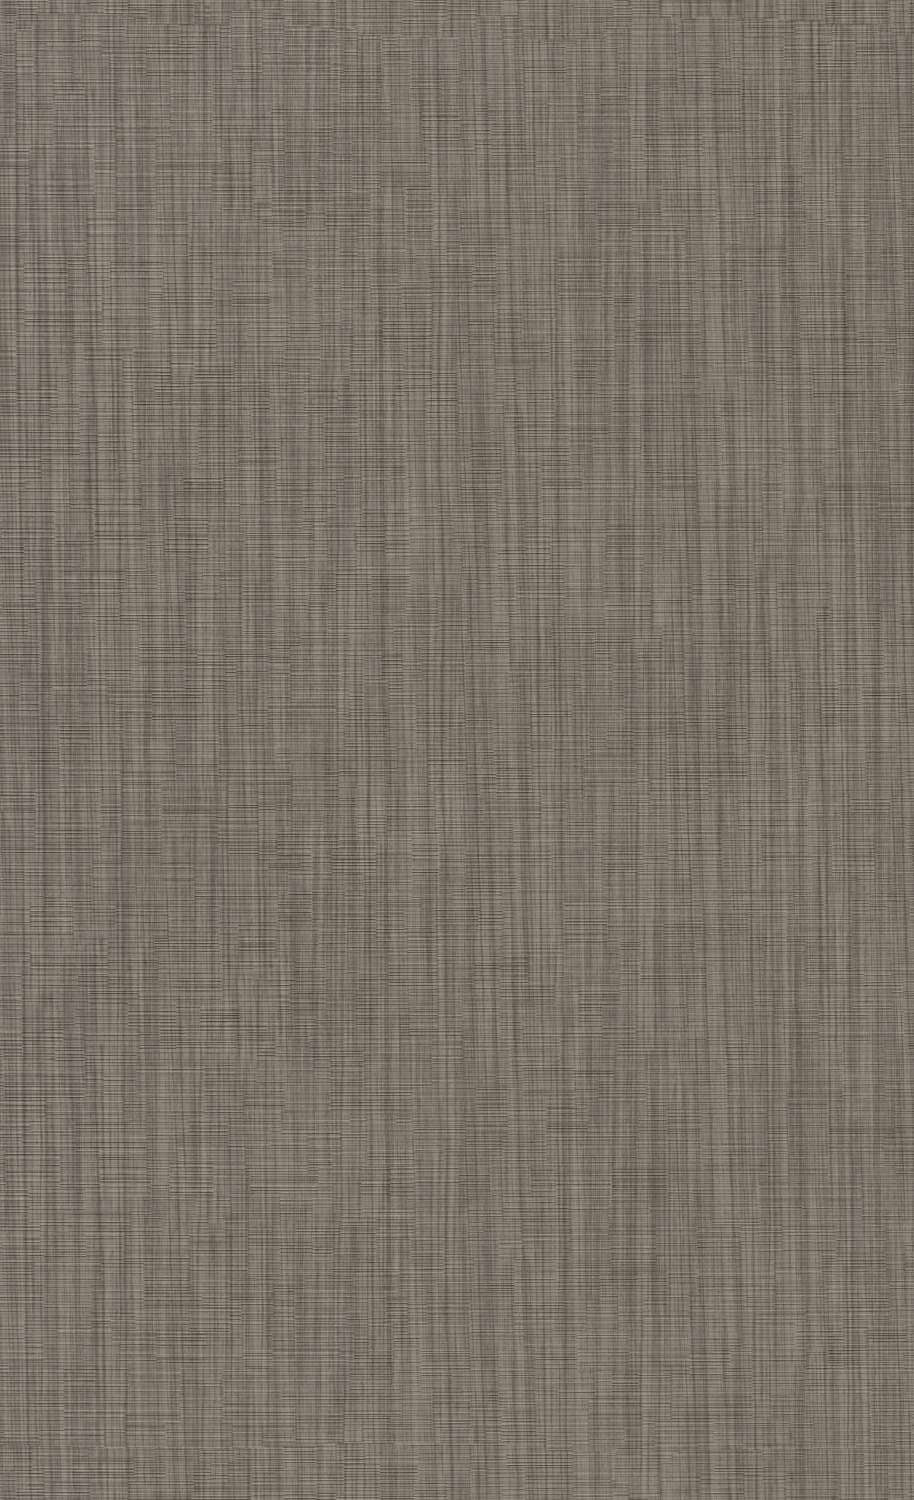 Charcoal Gray Rustic Wallpaper C7298 | Vinyl Contract Wall Covering